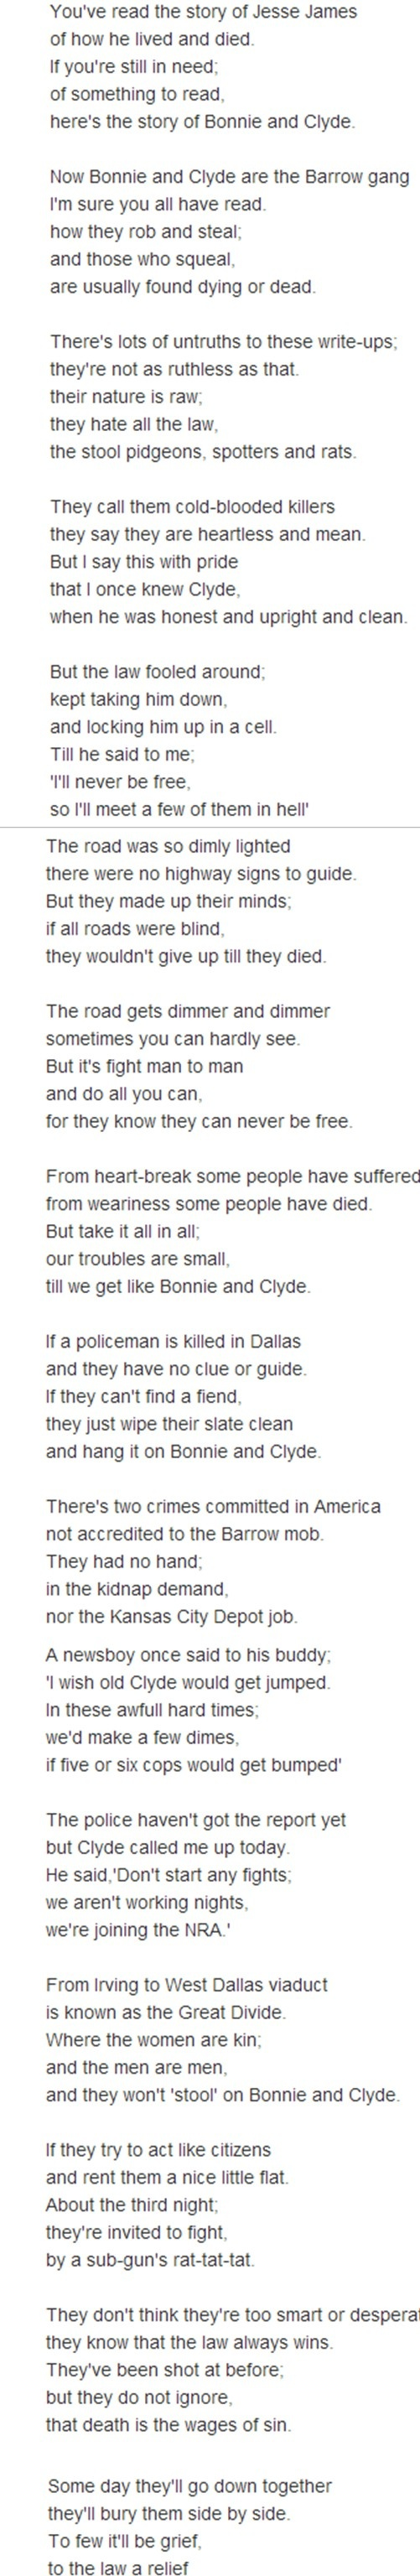 """The Trail's End by Bonnie Parker or The story of Bonnie and Clyde. They left out """"But it's death, for Bonnie and Clyde."""" At the end Bonnie's my favorite poet - NM"""